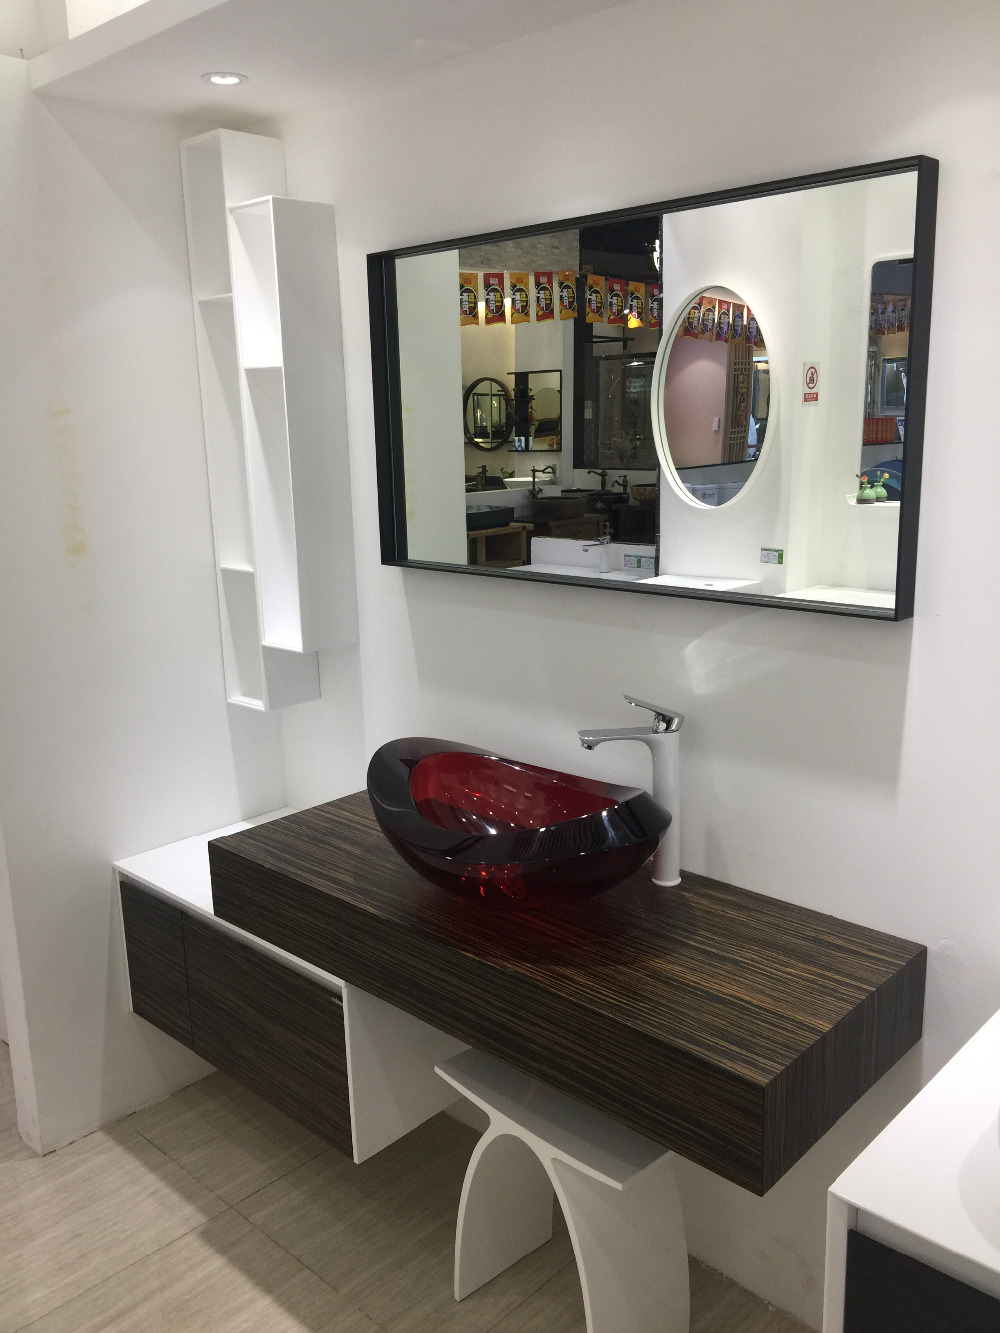 1200mm Wall Mounted Solid Surface Stone Single Basin With Soild Wooden Bathroom Vanity Cloakroom Cabinet Oka Furniture 2225F-0